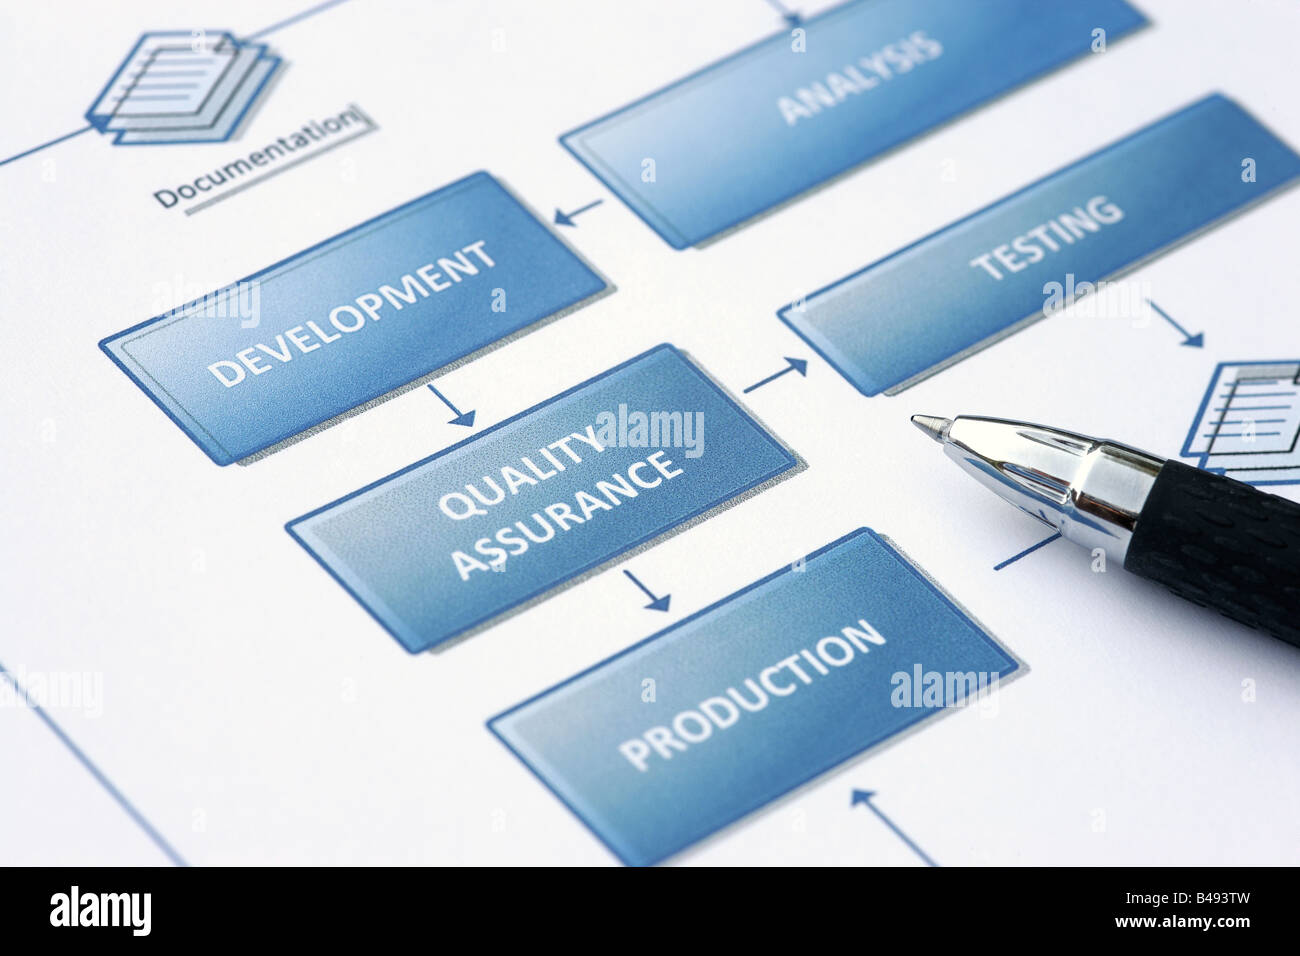 Flowchart Structure Stock Photos & Flowchart Structure Stock Images ...